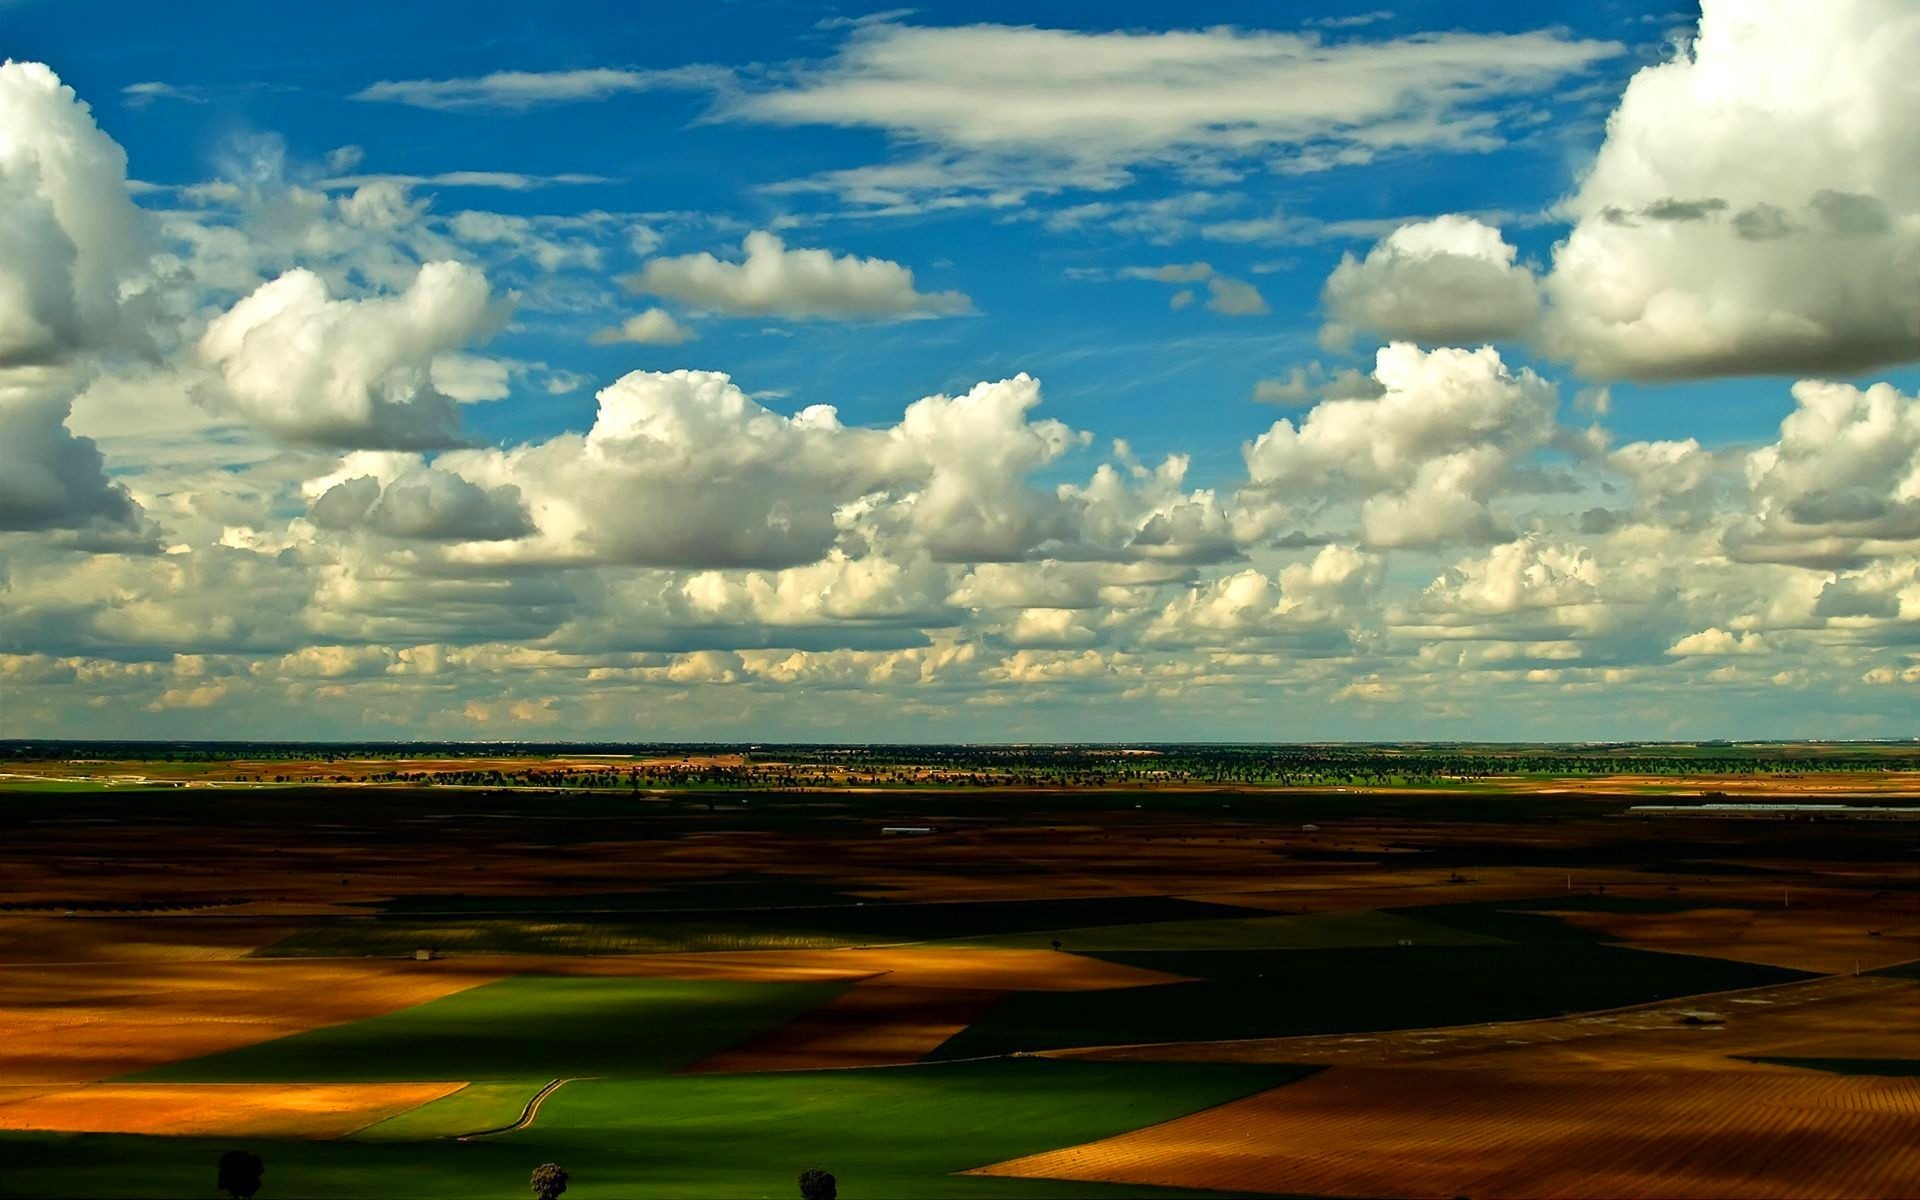 clouds Landscapes nature fields HD Wallpaper